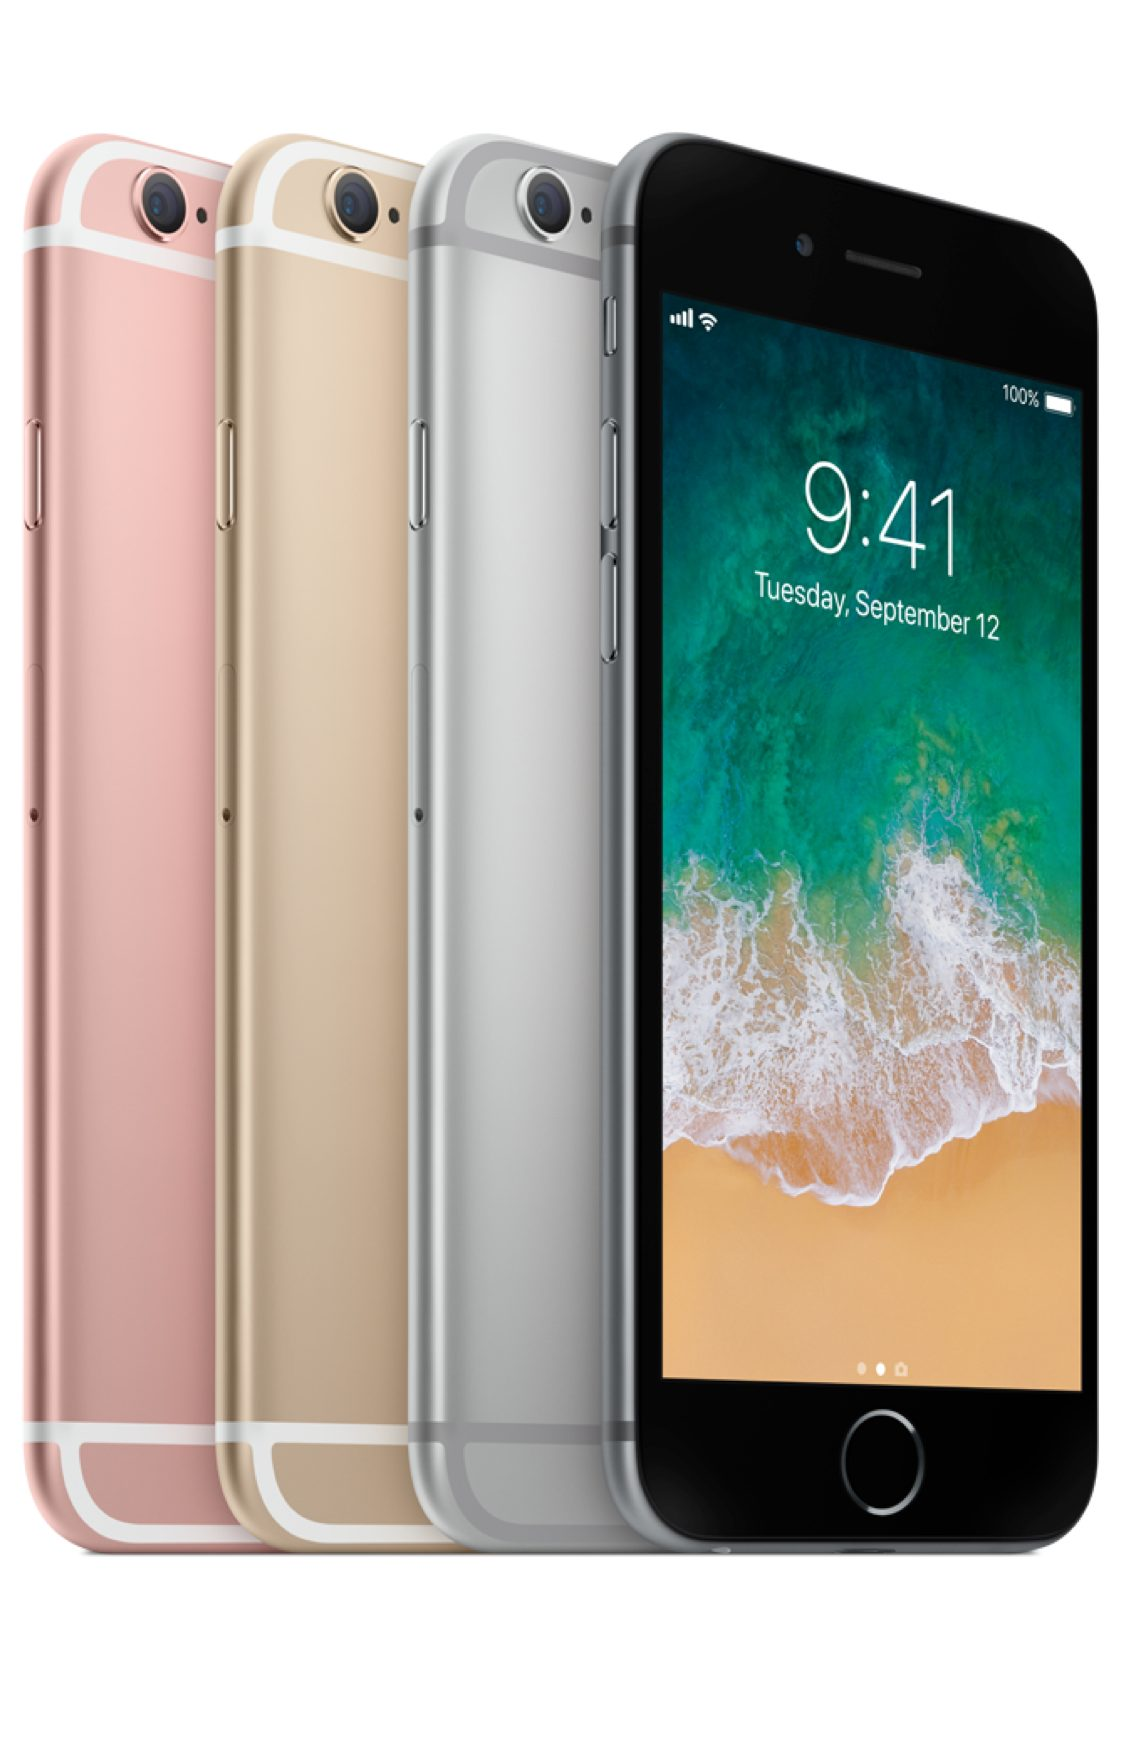 IPhone 6s Pre Owned